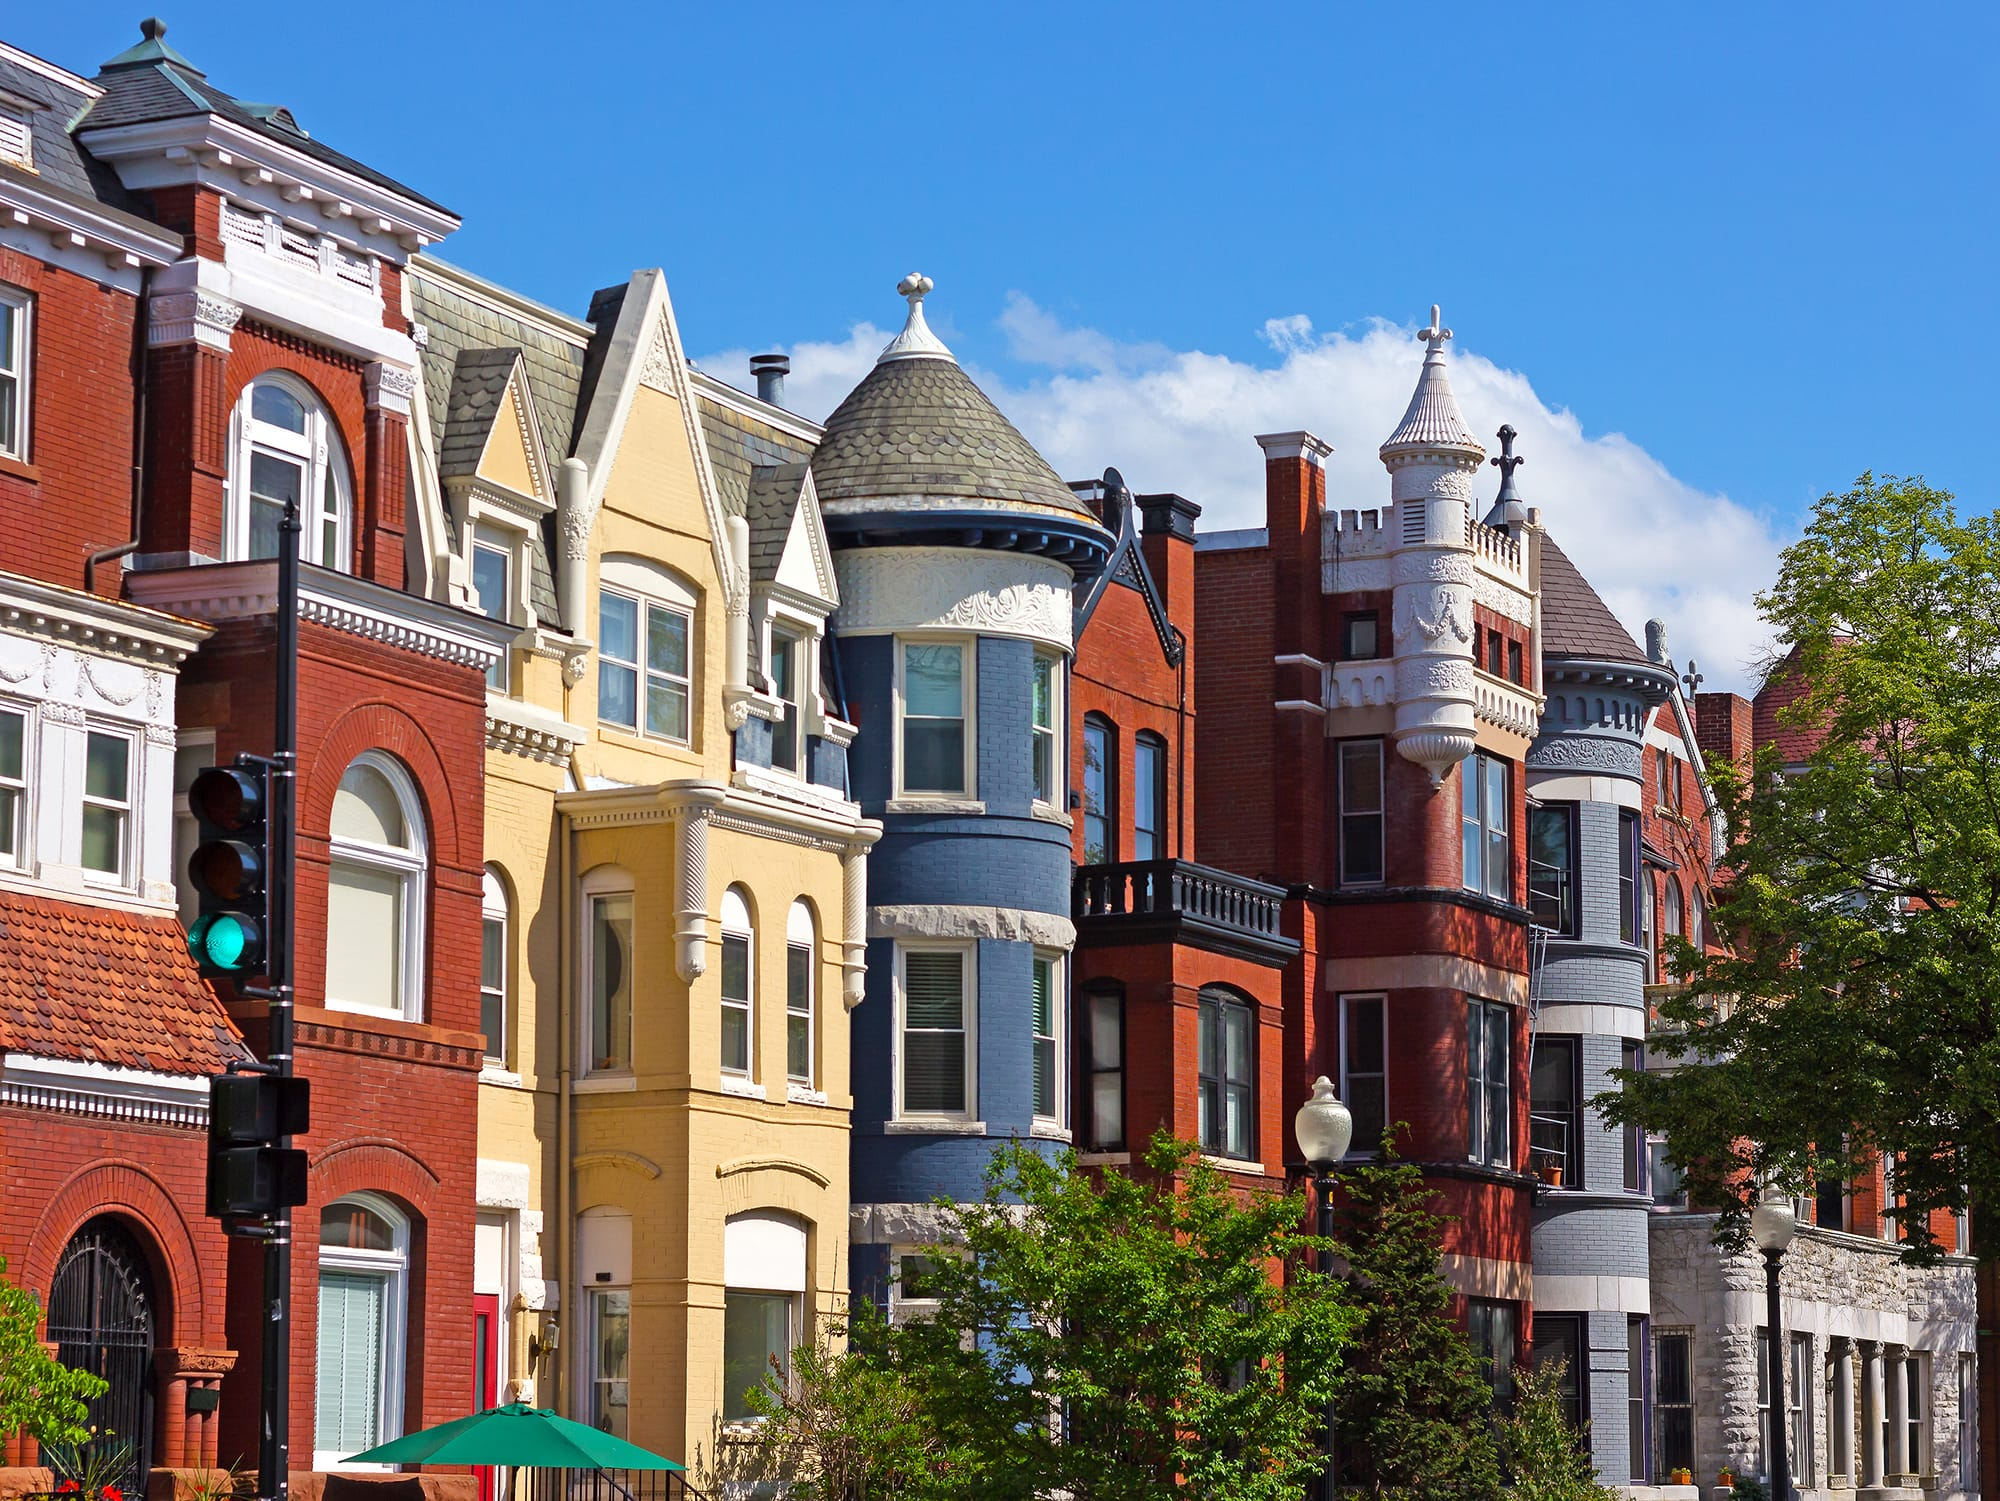 Looking to Rent In Washington D.C.? Here's Why Buying Might Be a Better Option